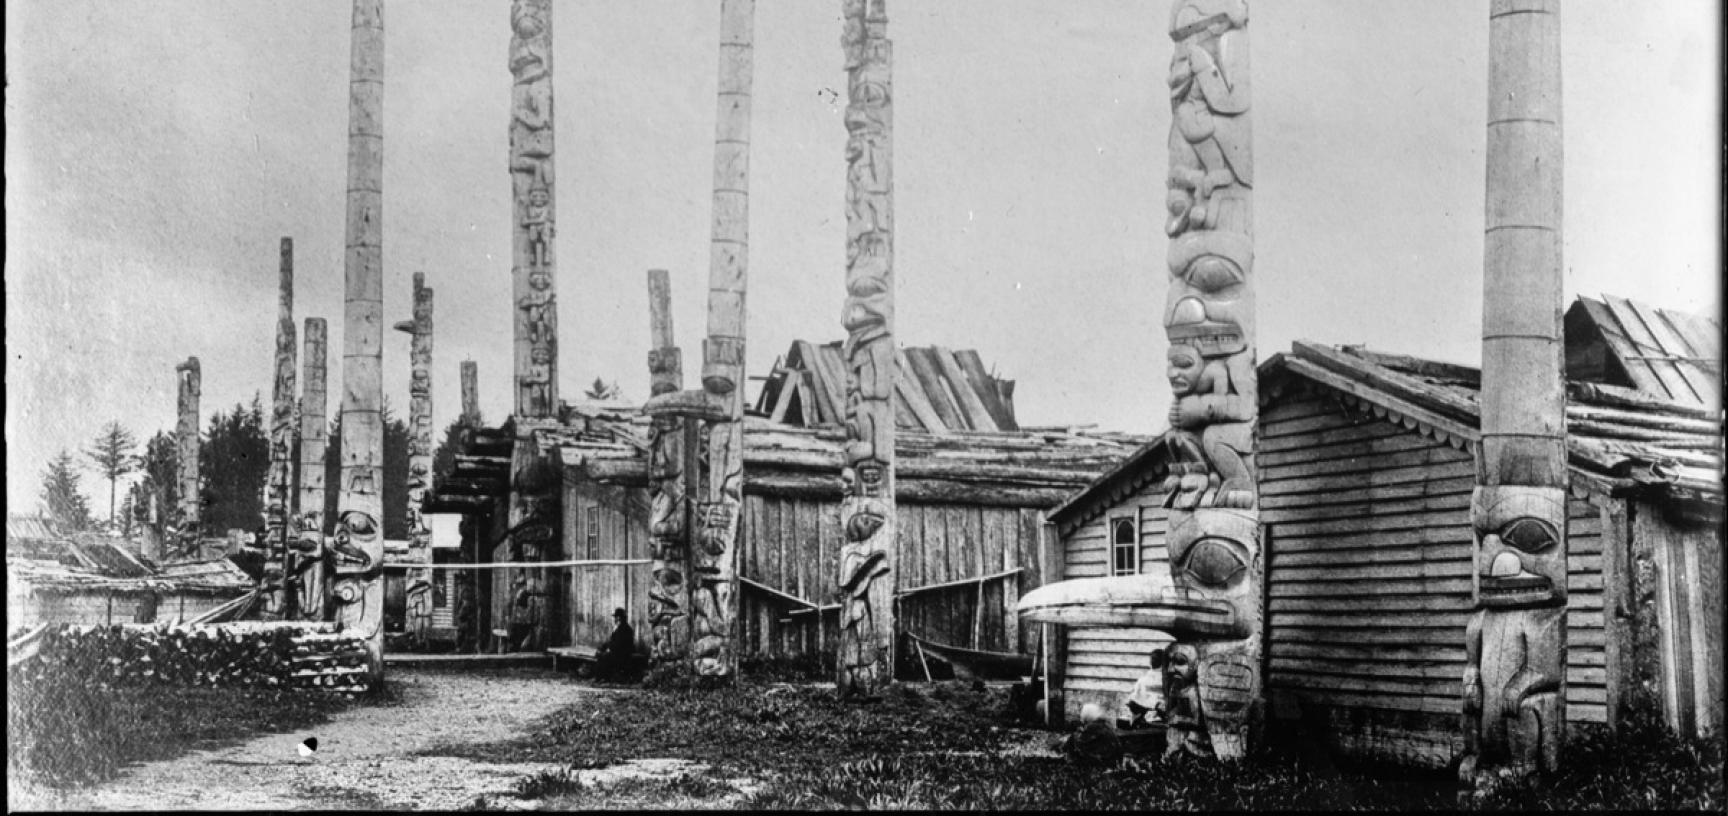 View of houses and totem poles at Masset village, with the frontal post of Star House in the foreground, now located in the Pitt Rivers Museum. Photograph by Bertram Buxton. Masset, Haida Gwaii, Canada. 1882. (Copyright Pitt Rivers Museum, University of O